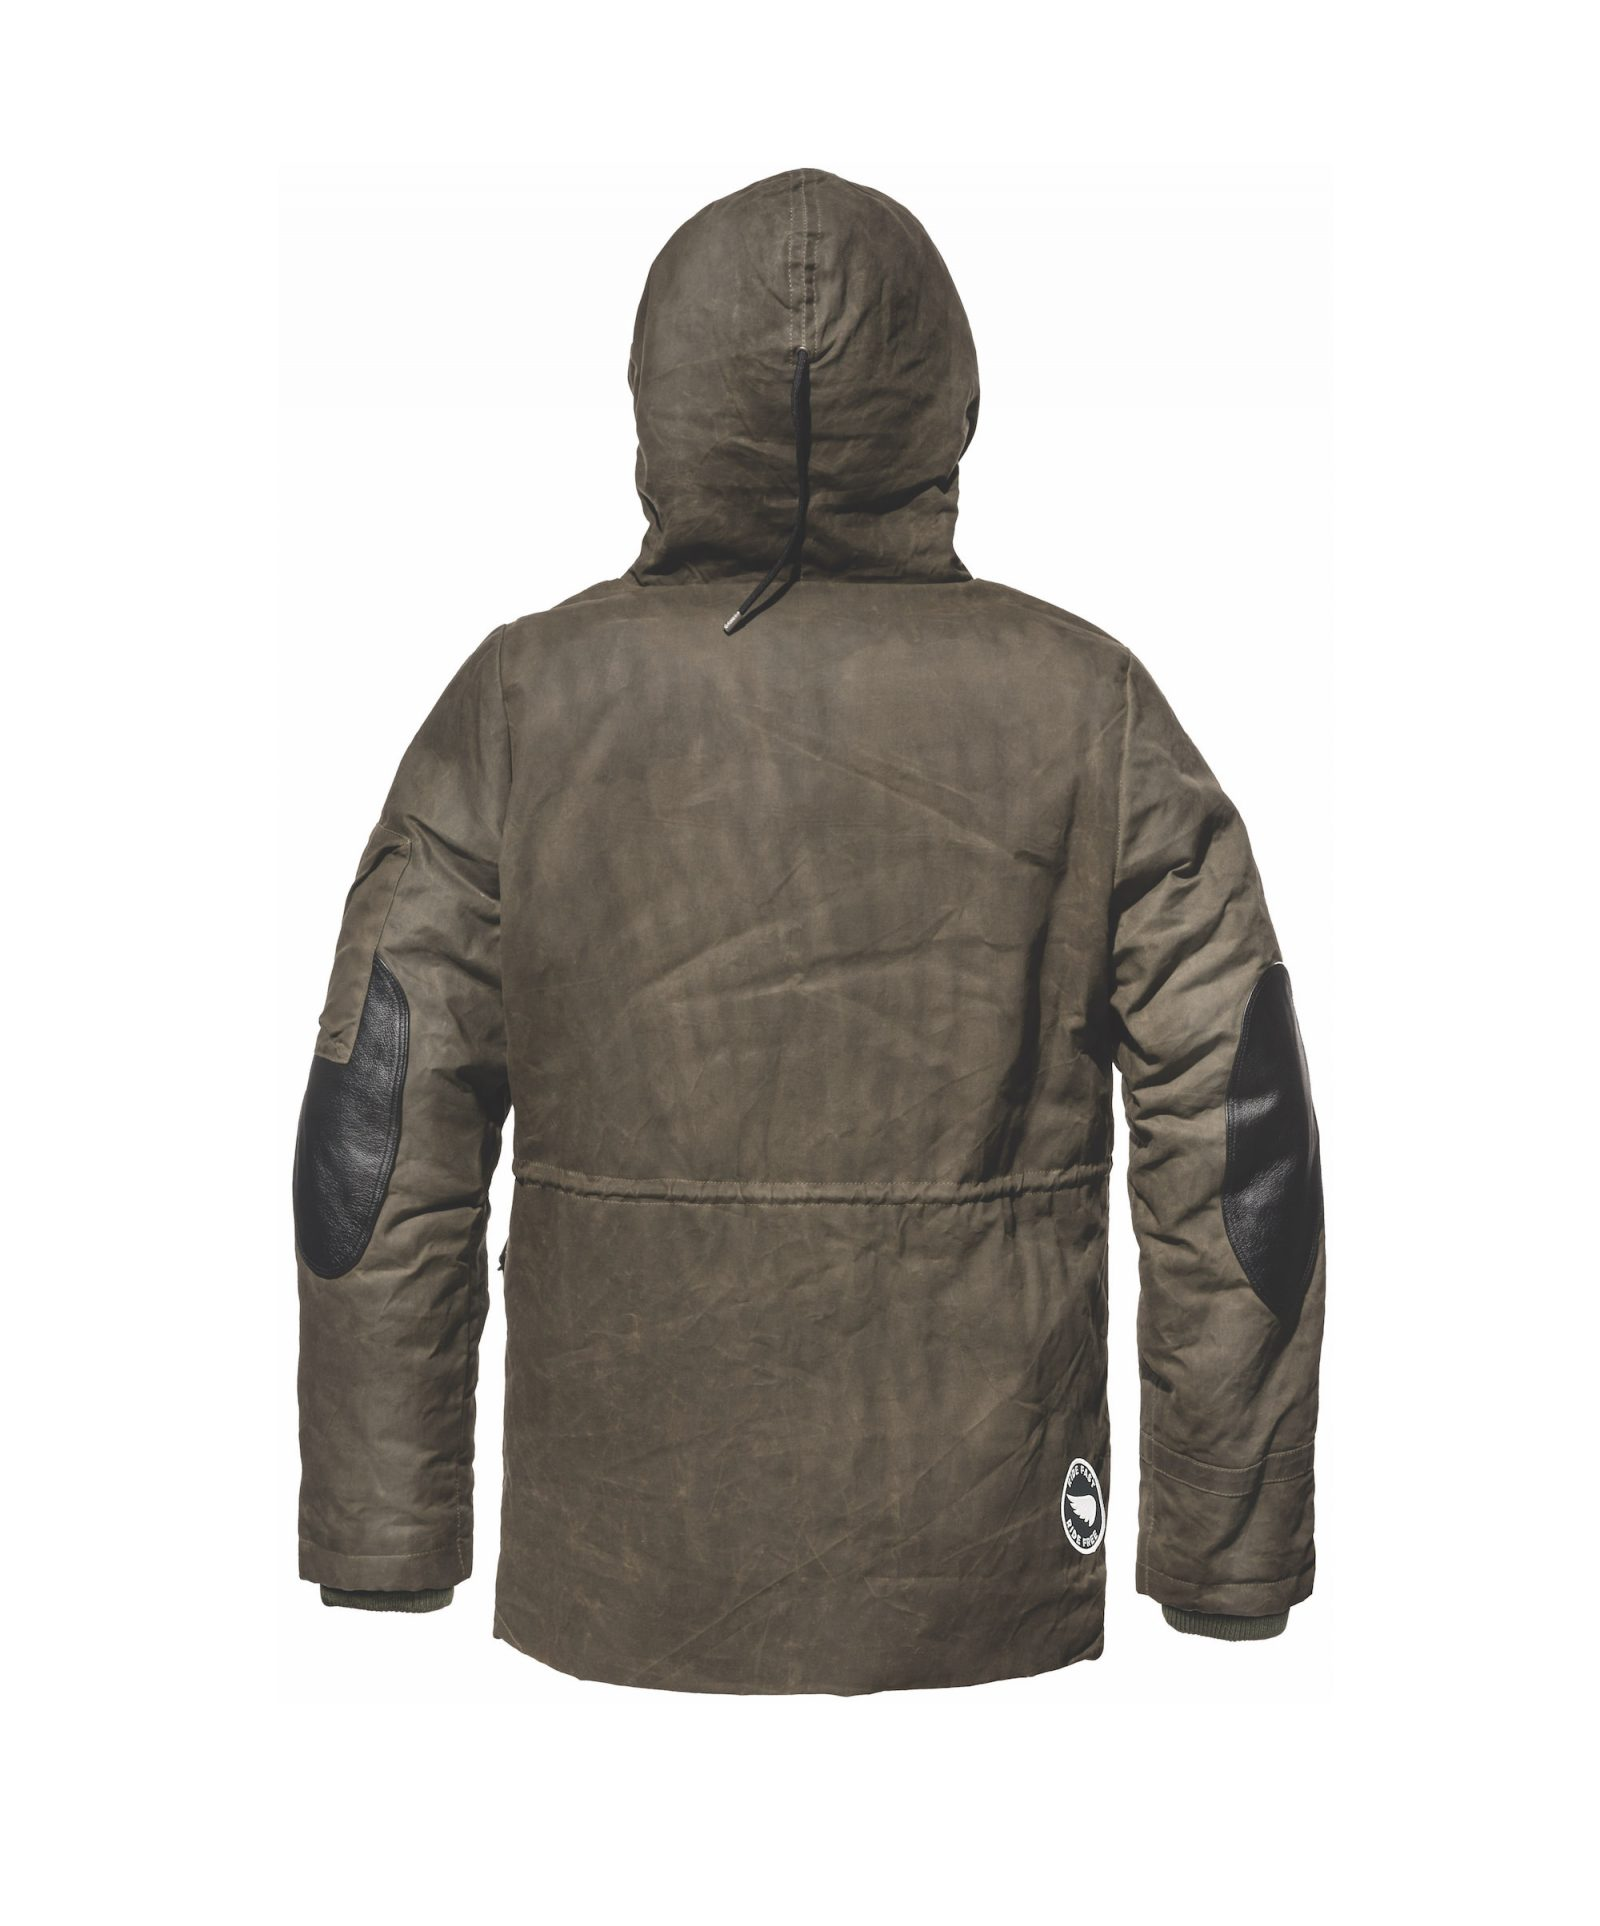 Saint Armoured Cool Climate Motorcycle Parka